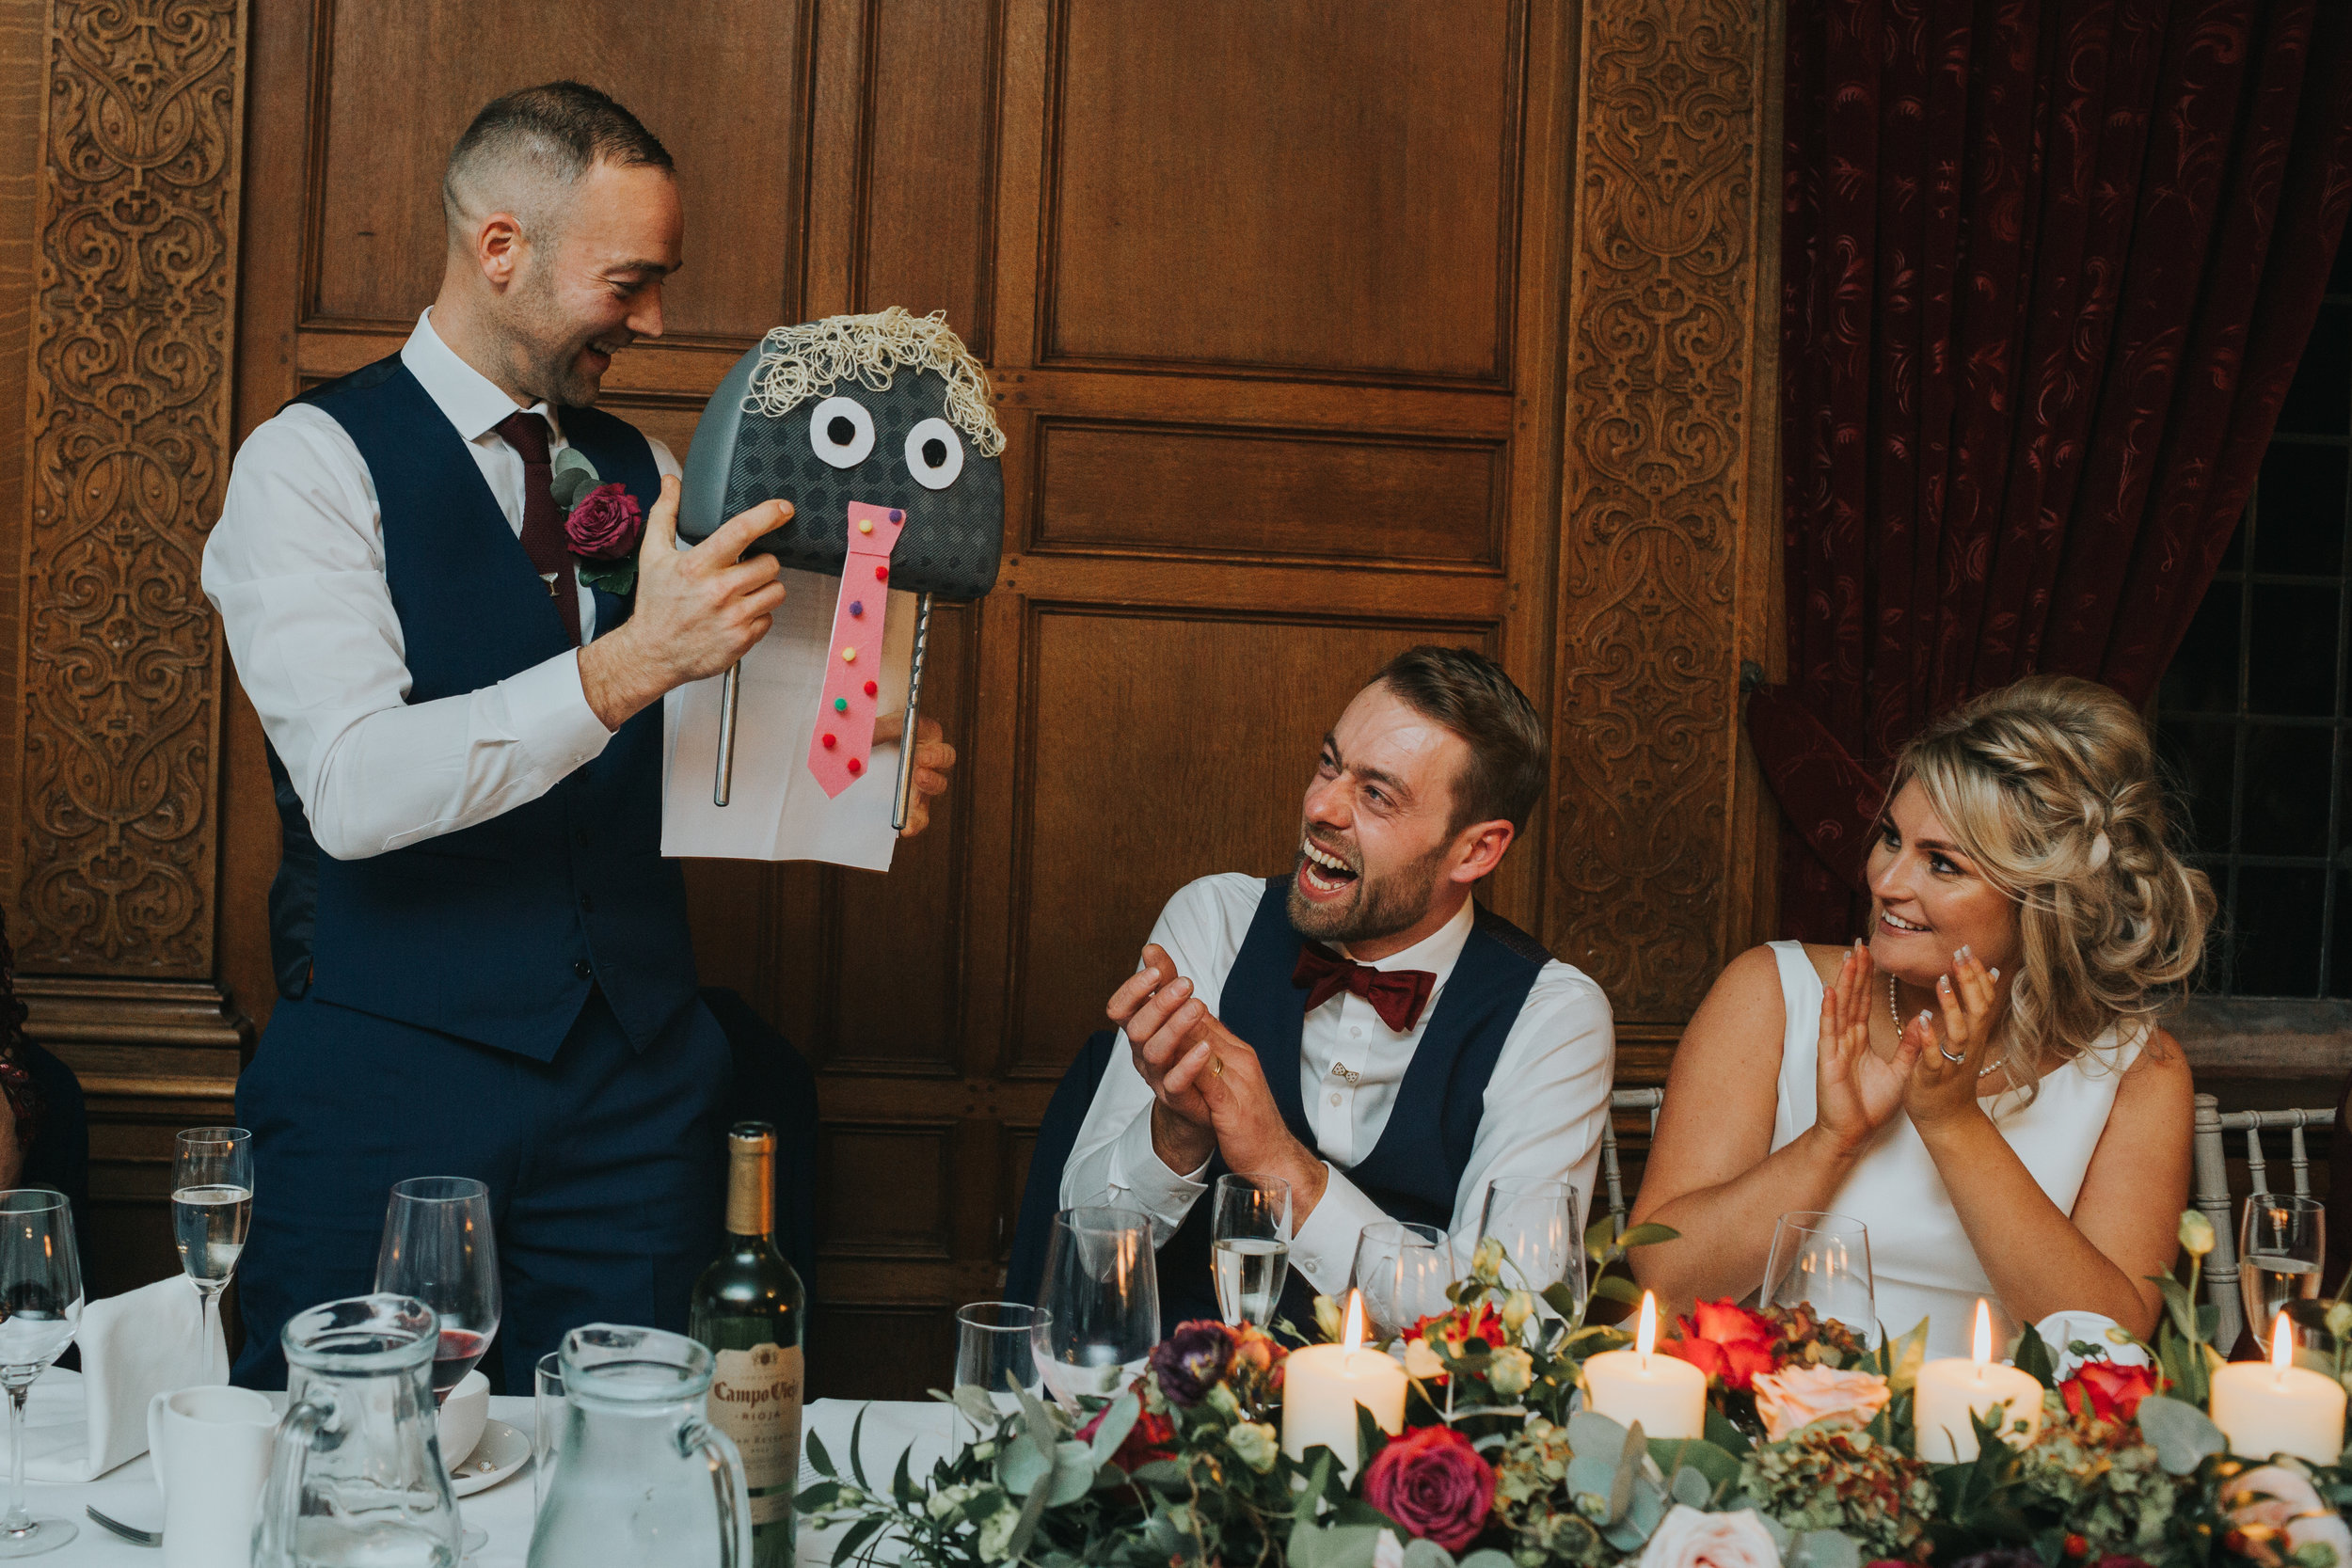 The best man presents the Groom with a car seat made up to look like a person.